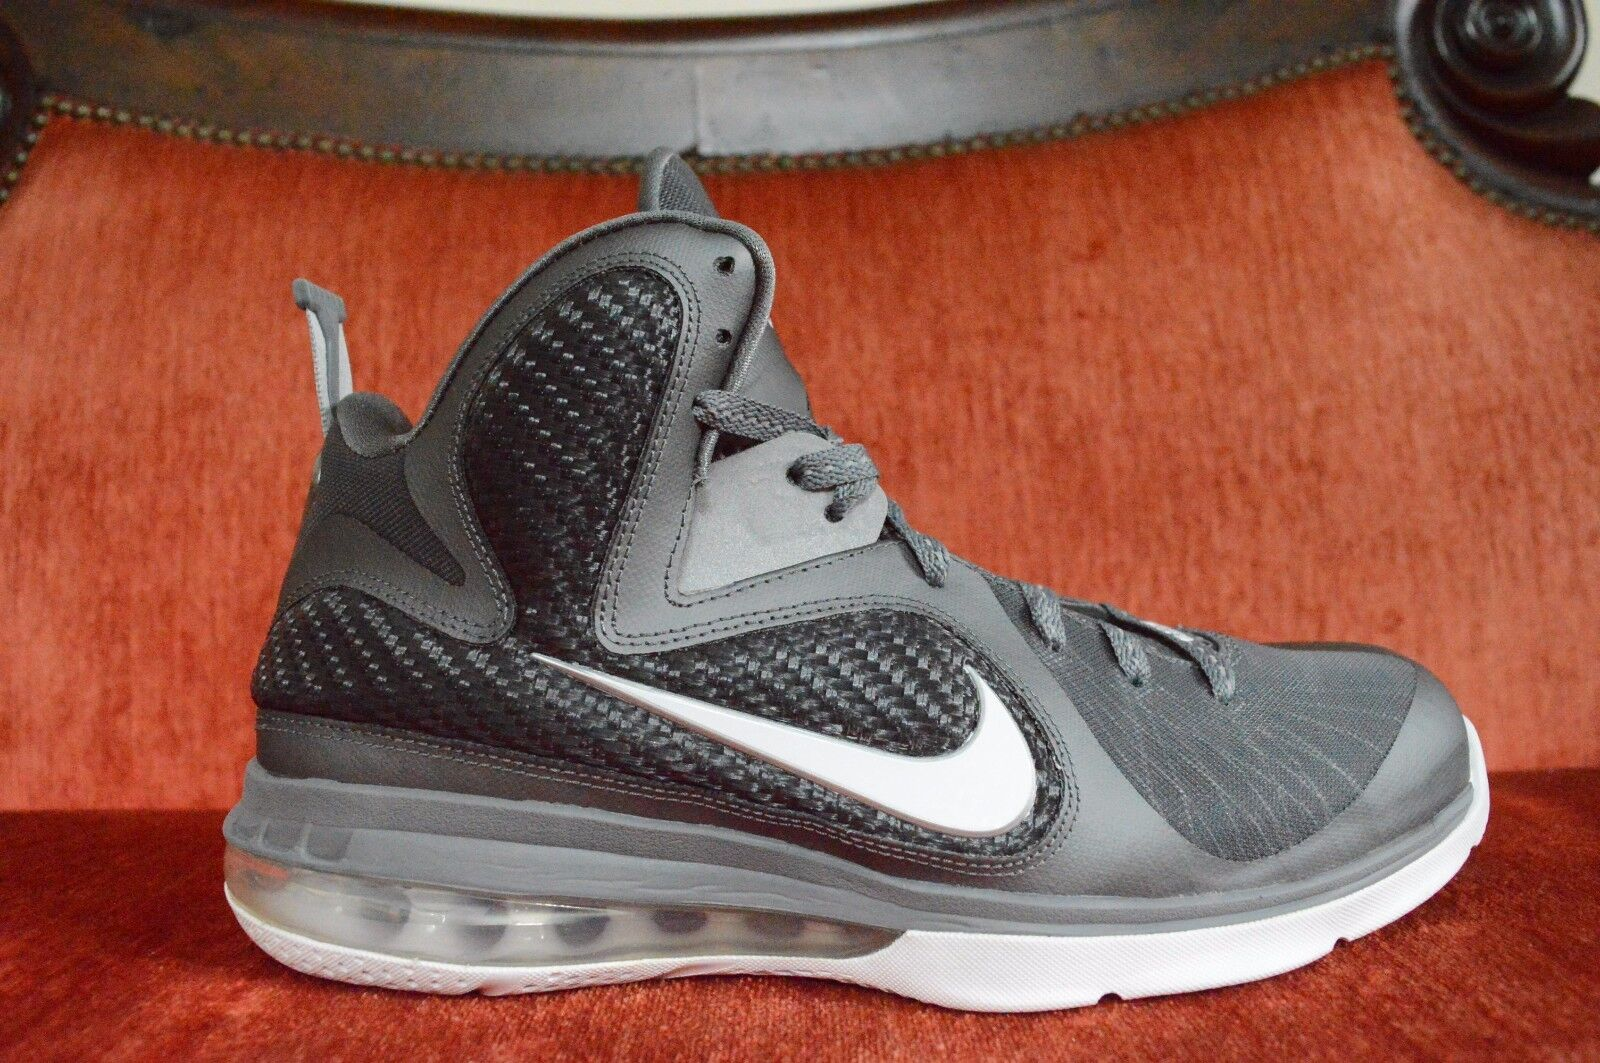 1f2c68bb5f2 WORN ONCE Nike LeBron 9 IX Cool Grey Size 9.5 469764-007 OG ALL VNDS  nomwoe0-Athletic Shoes